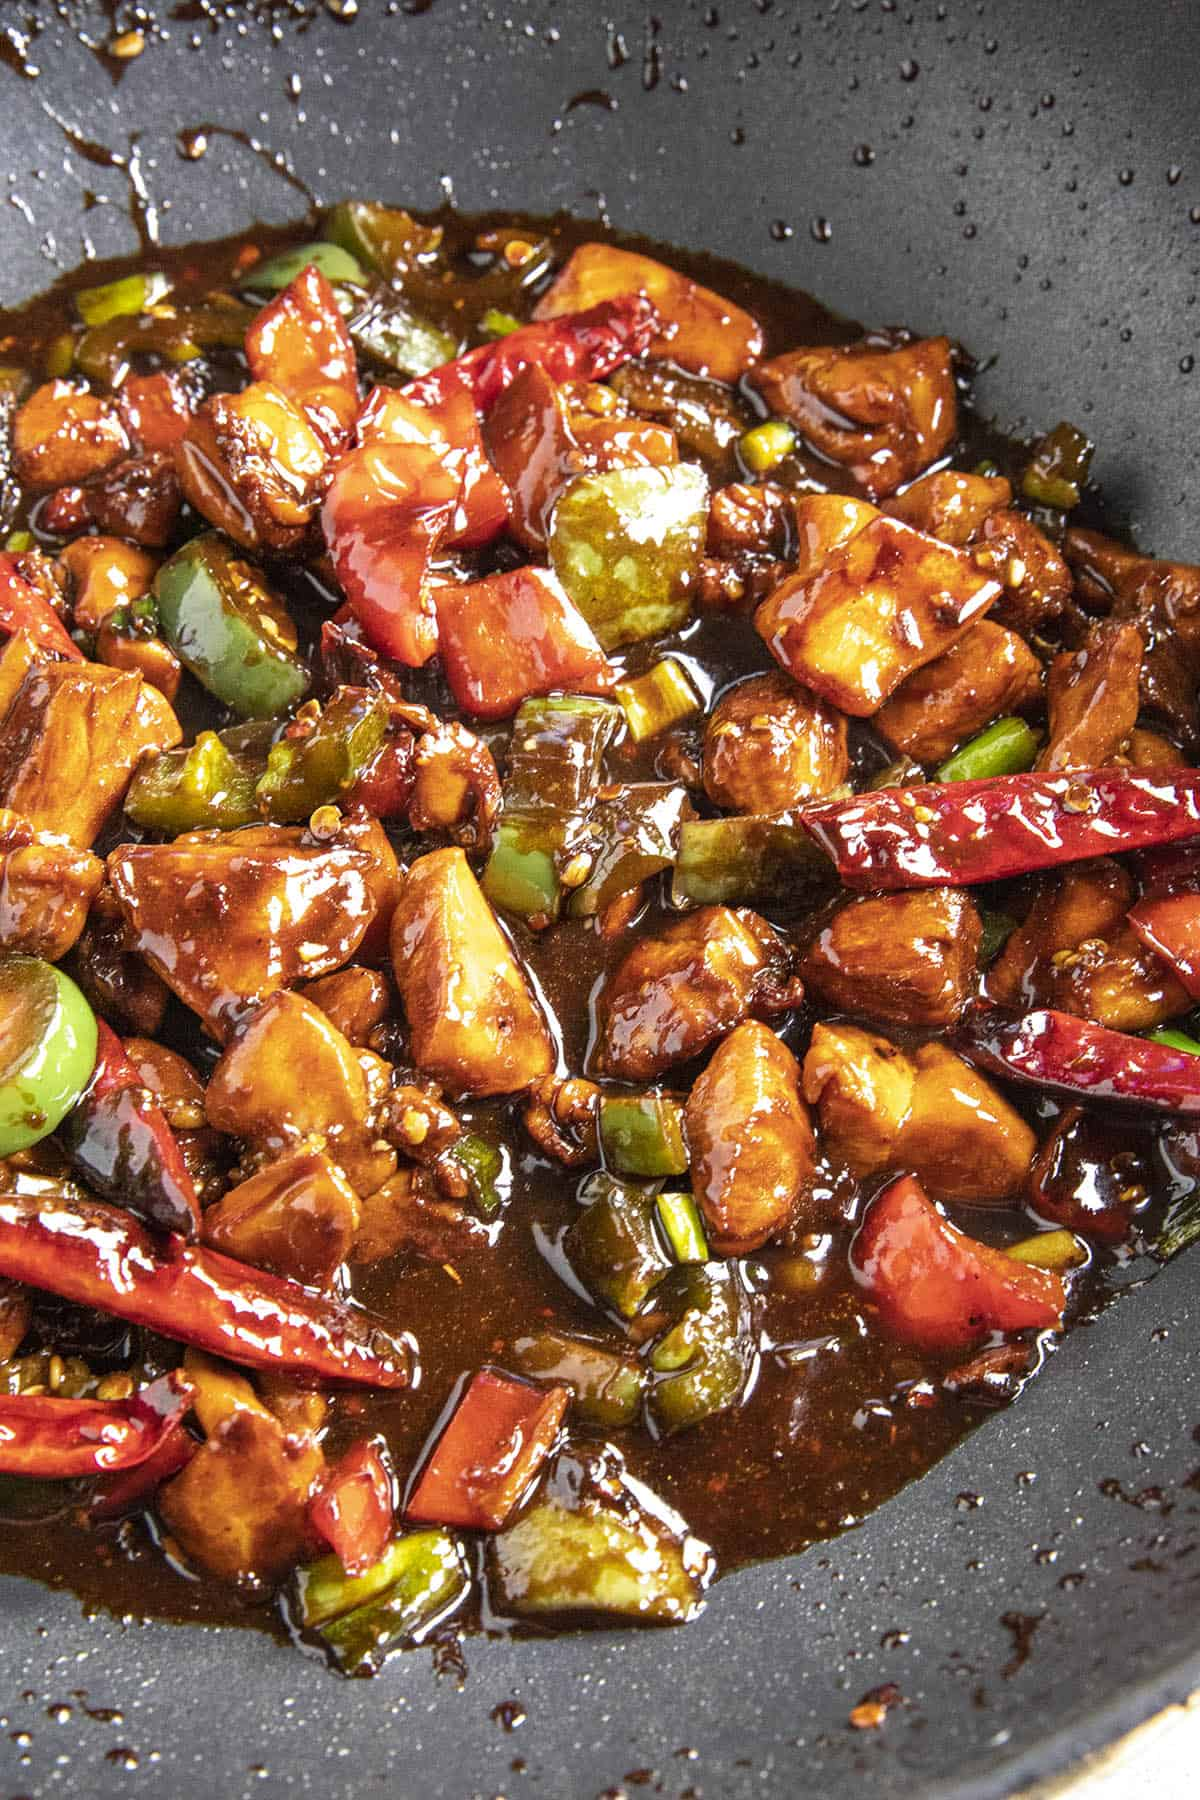 Simmering the Kung Pao Chicken in a pan with sauce